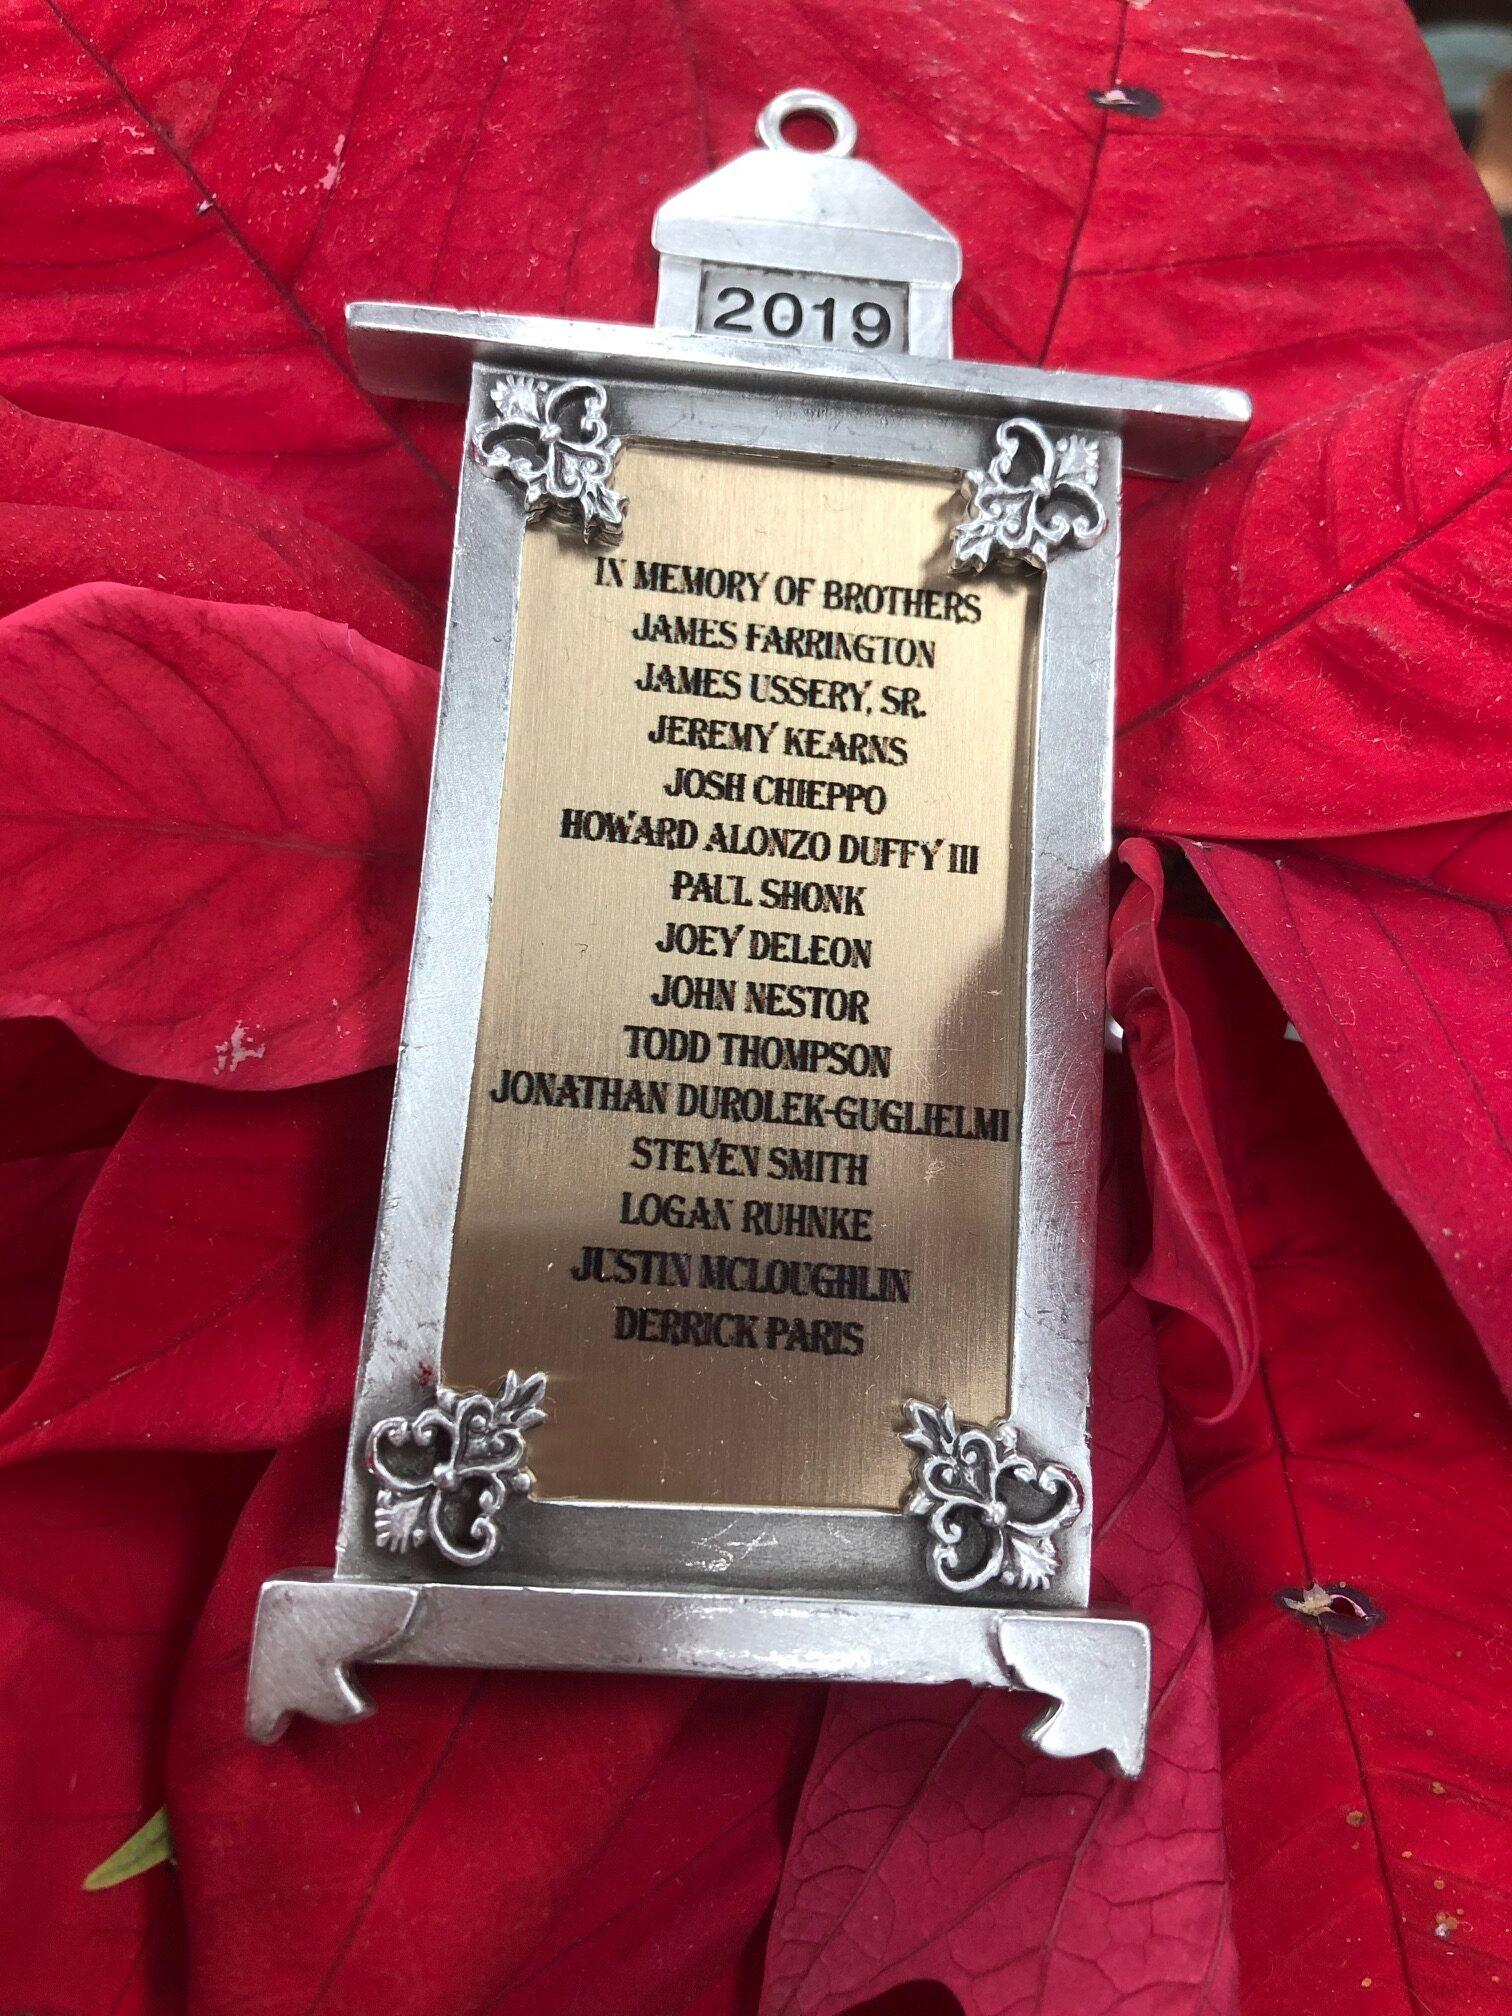 2019 Commemorative Fallen Linemen Ornament